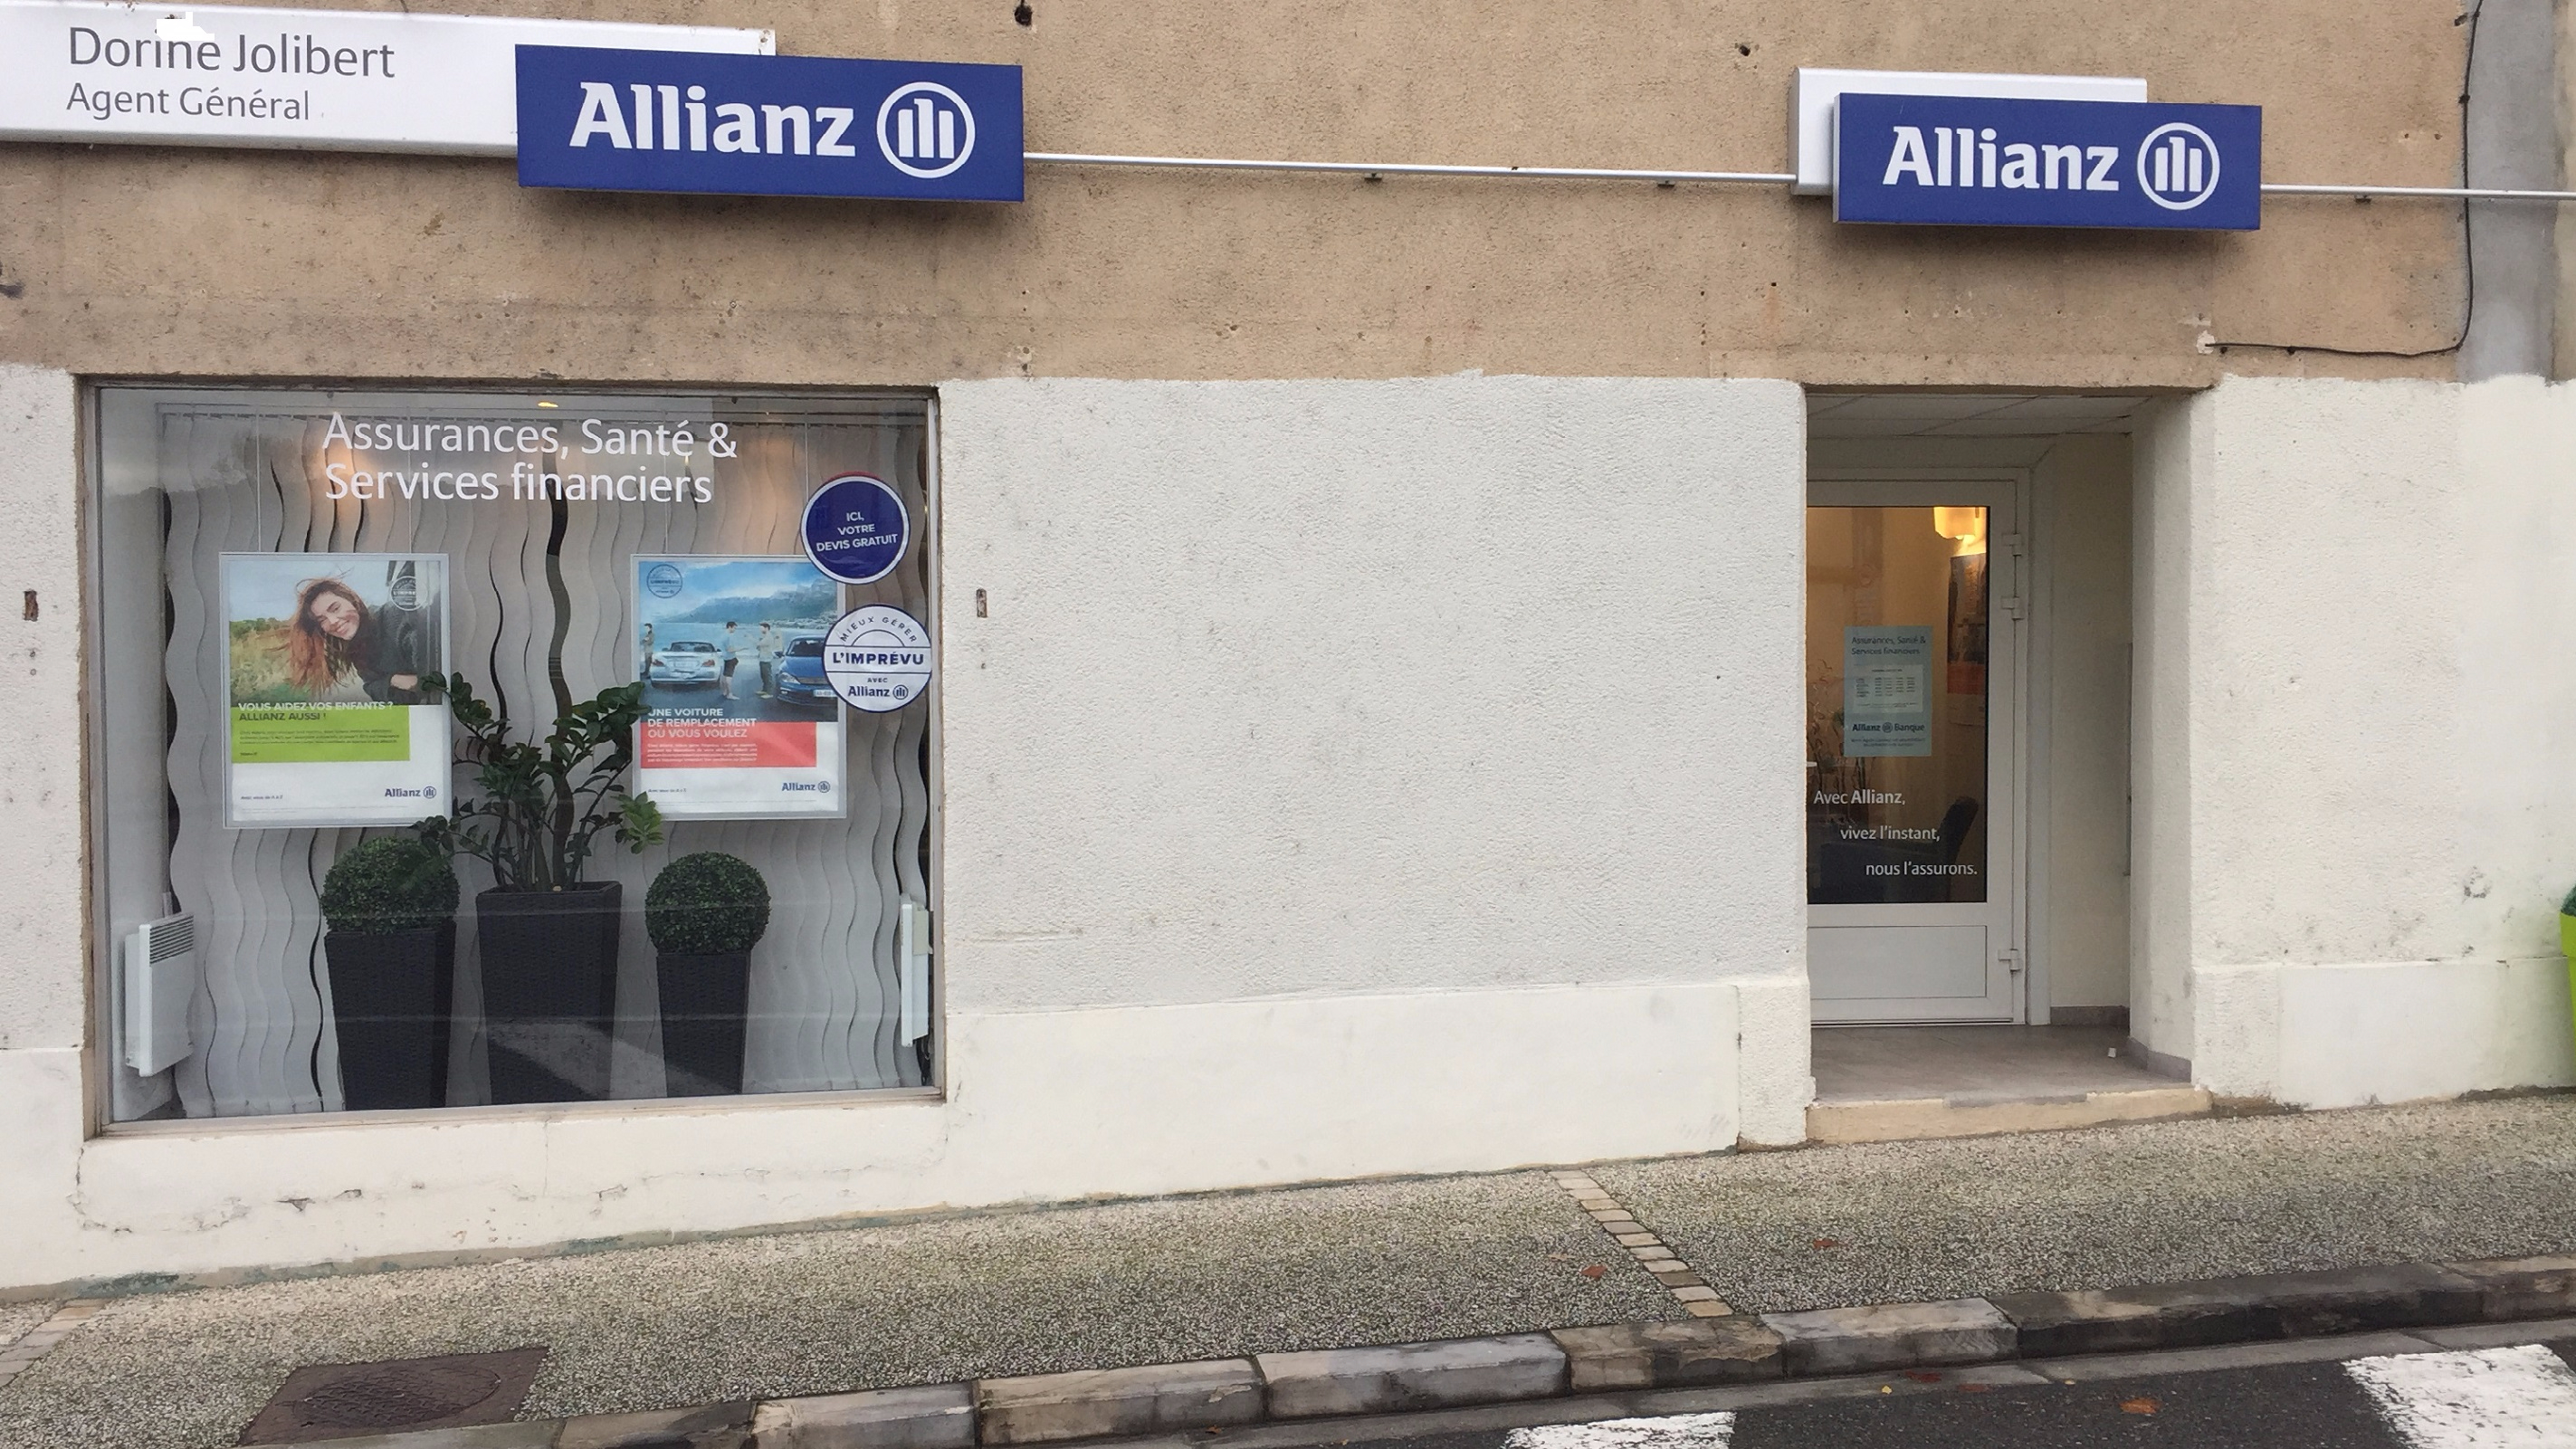 Allianz Montesquieu volvestre - Dorine JOLIBERT